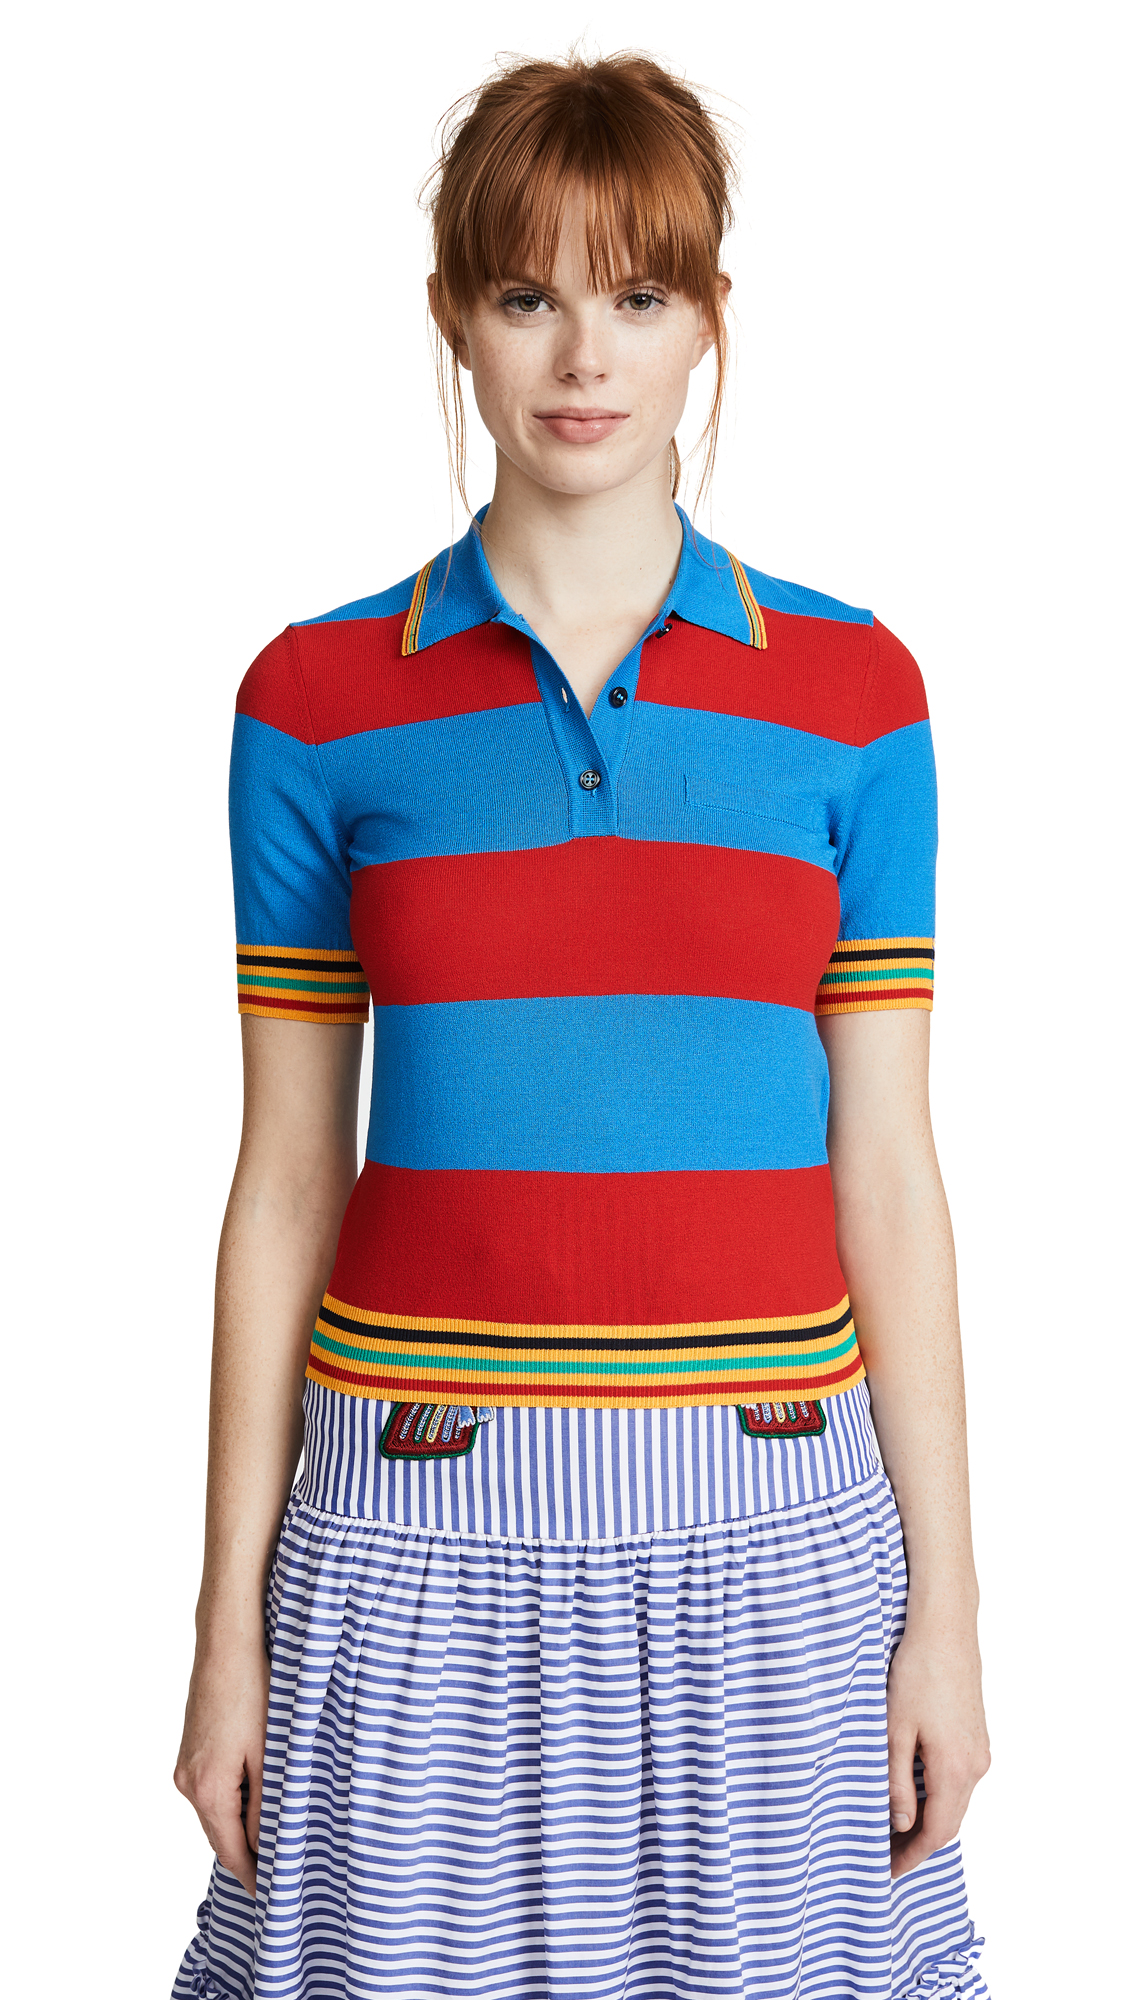 Stella Jean Striped Collared Shirt - Red/Blue